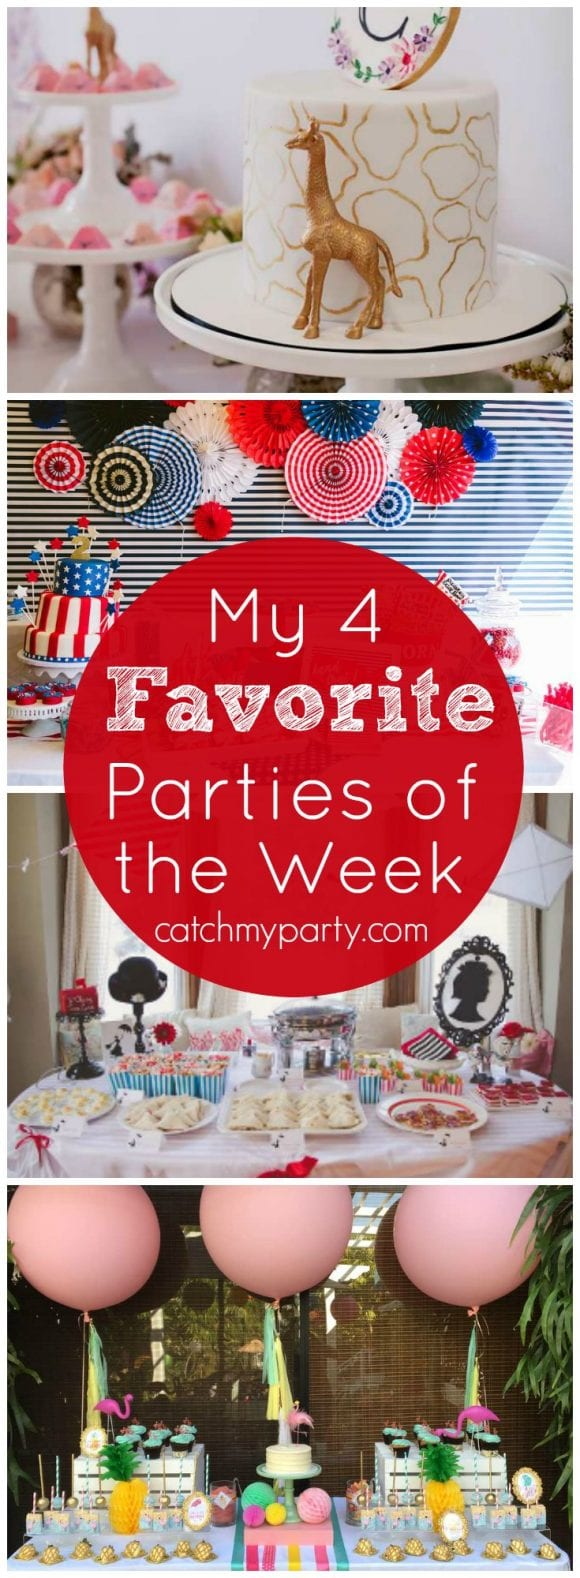 My favorite parties this week: a giraffe birthday party, a patriotic birthday, a Mary Poppins party and pink flamingo birthday